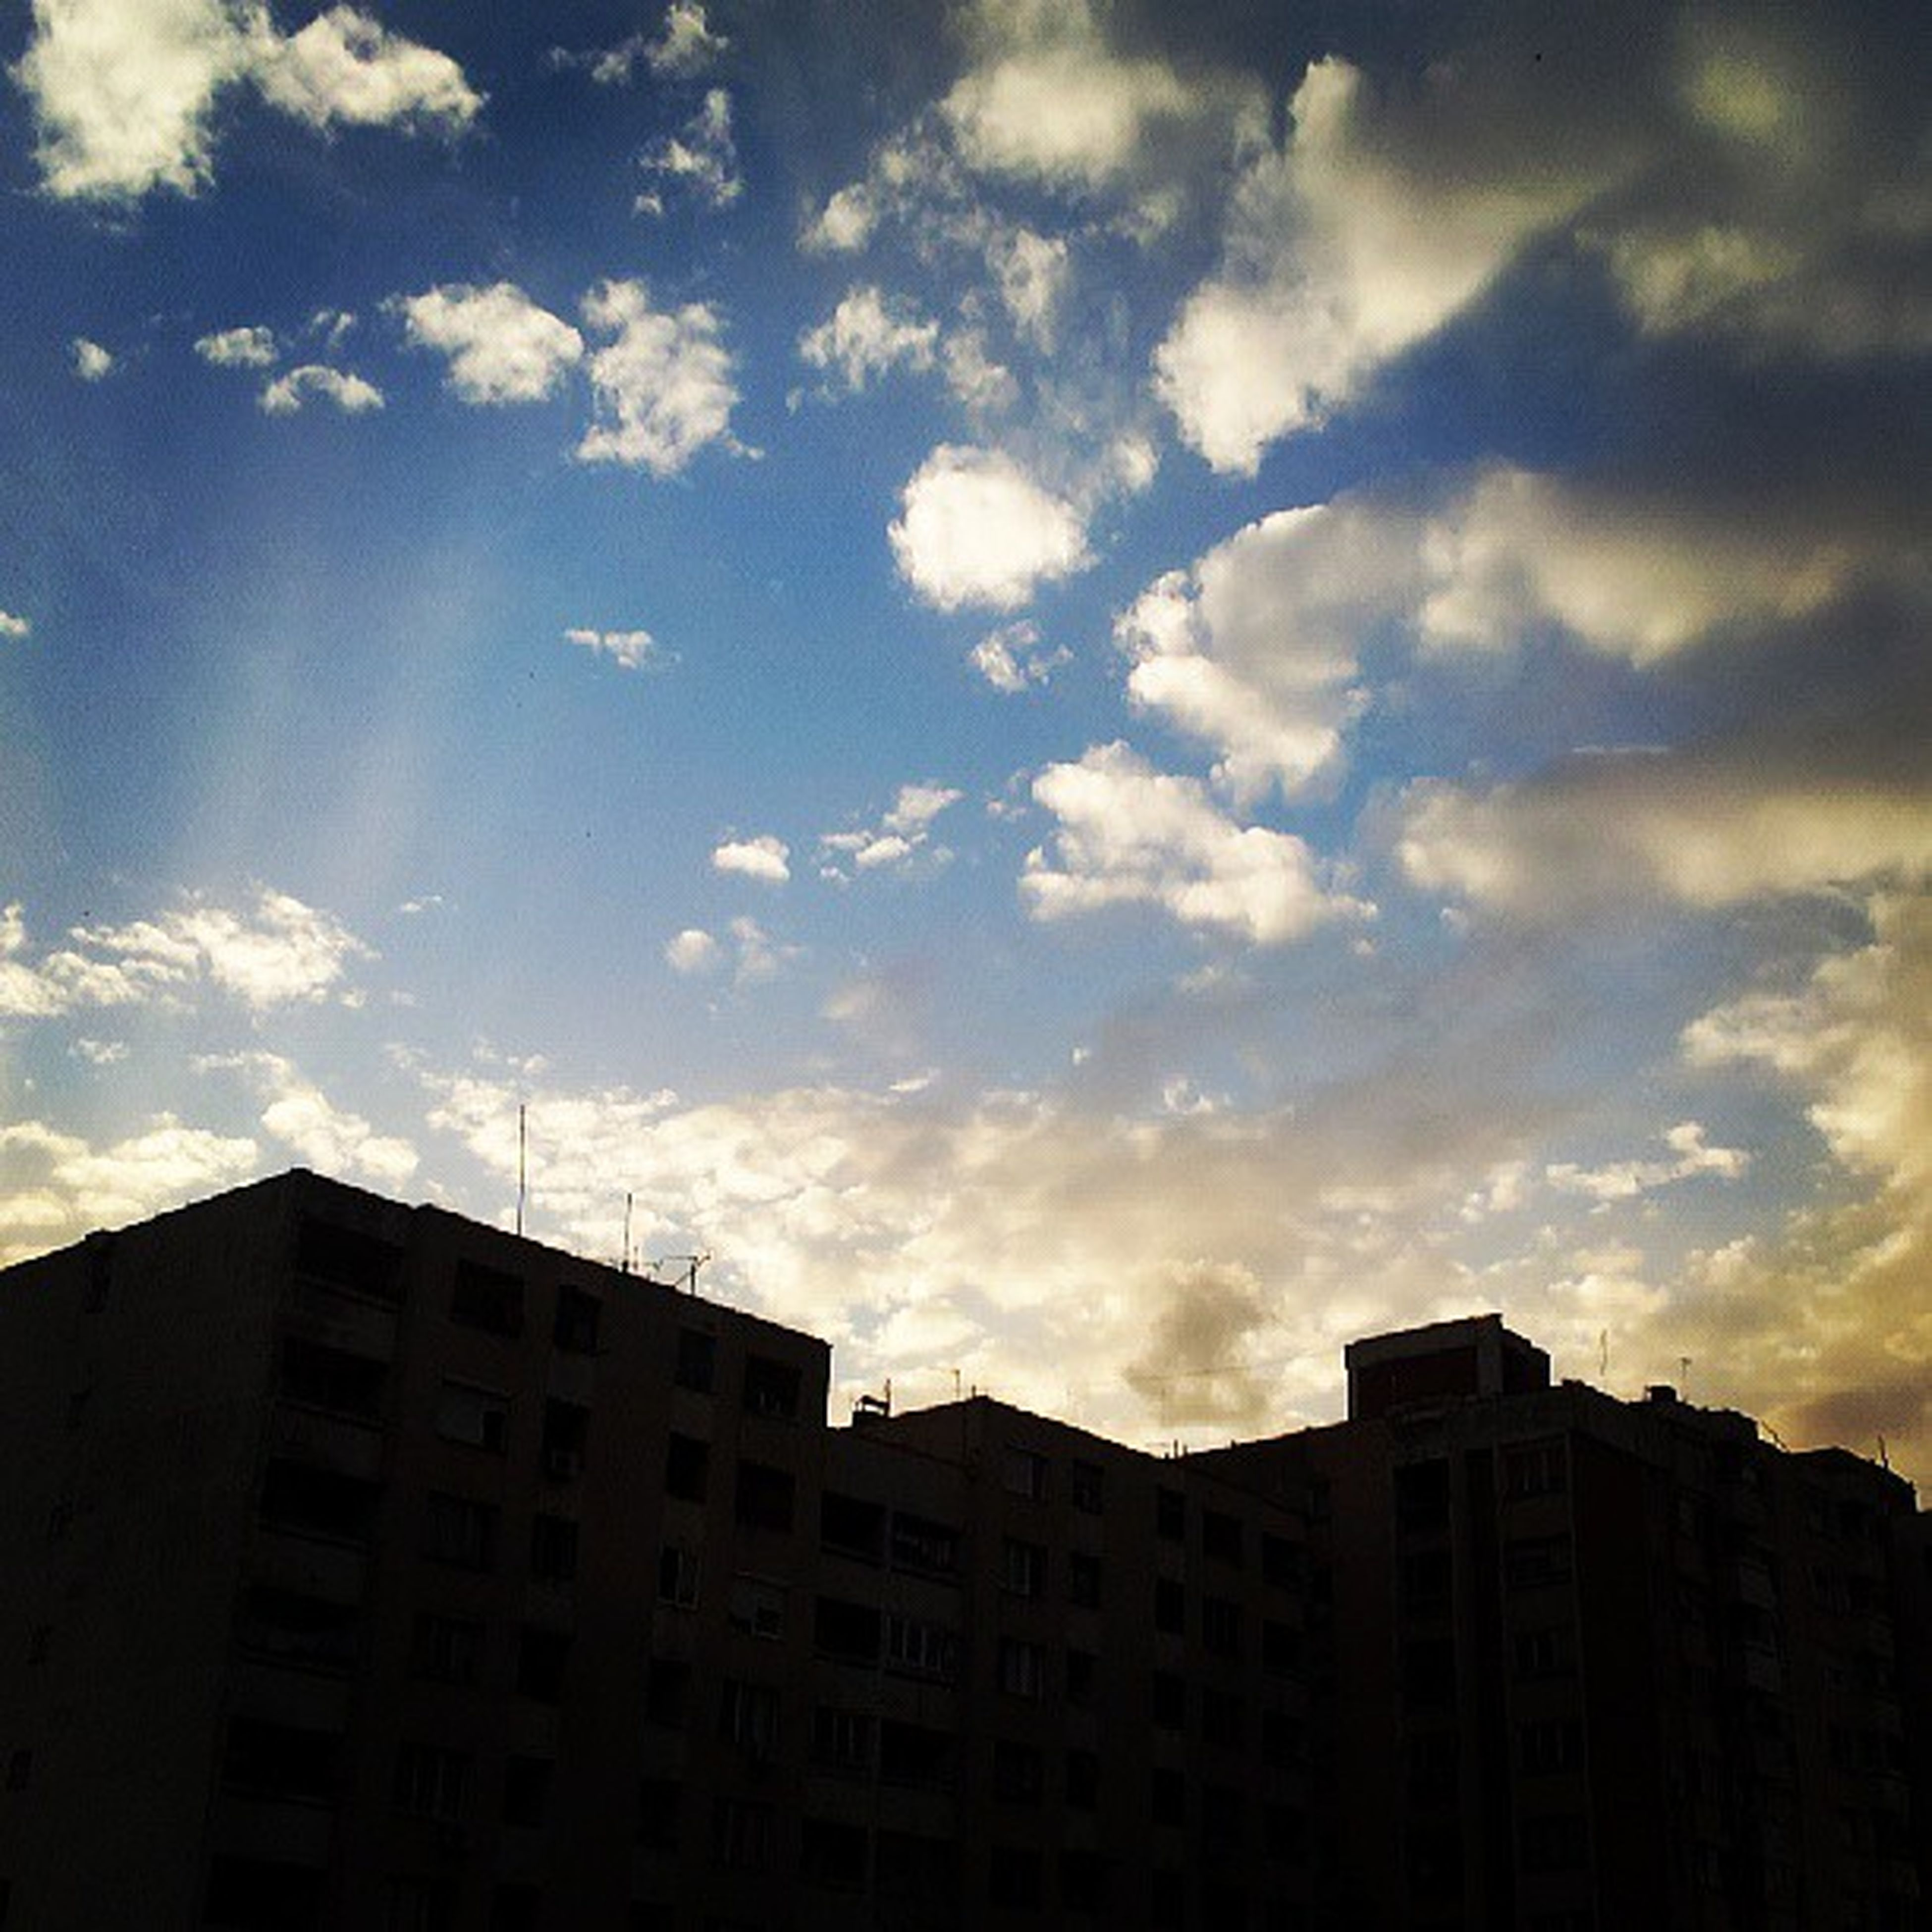 architecture, building exterior, built structure, low angle view, sky, cloud - sky, building, city, cloud, cloudy, residential building, residential structure, high section, silhouette, window, outdoors, no people, sunset, house, day